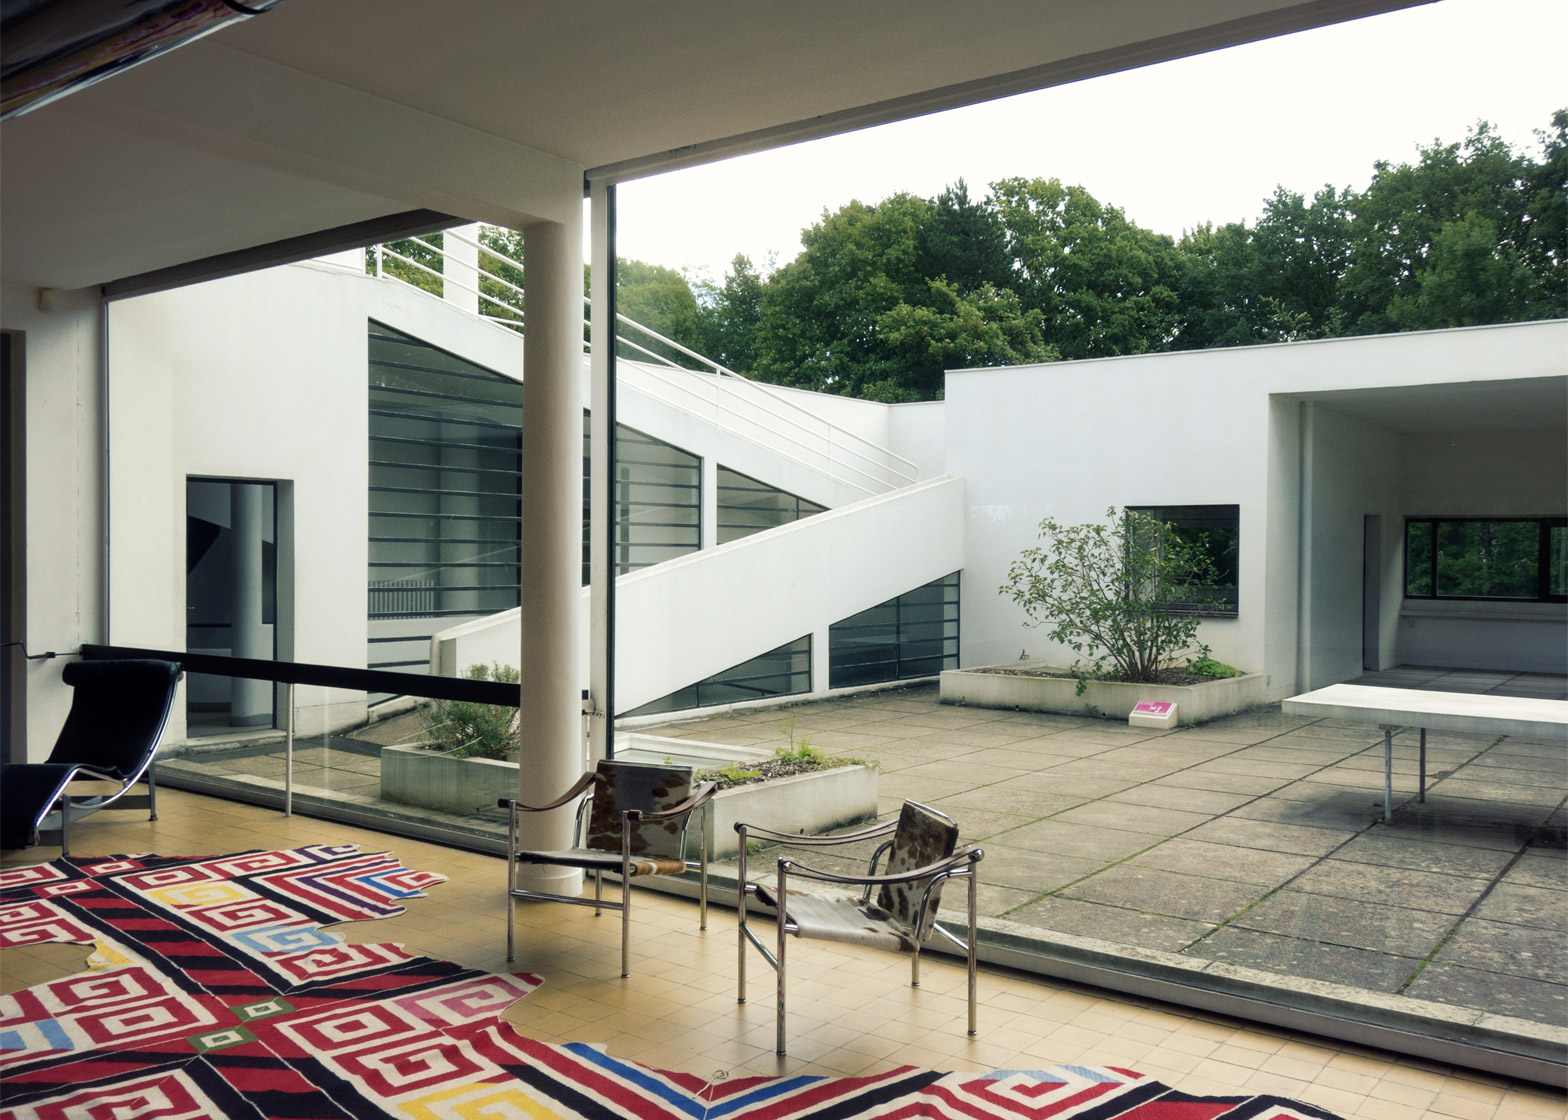 villa savoye Essay on le corbusier: villa savoye le corbusier (1887 –1965), a talented swiss-french architect and designer, is well known as the founder of modern architecture.